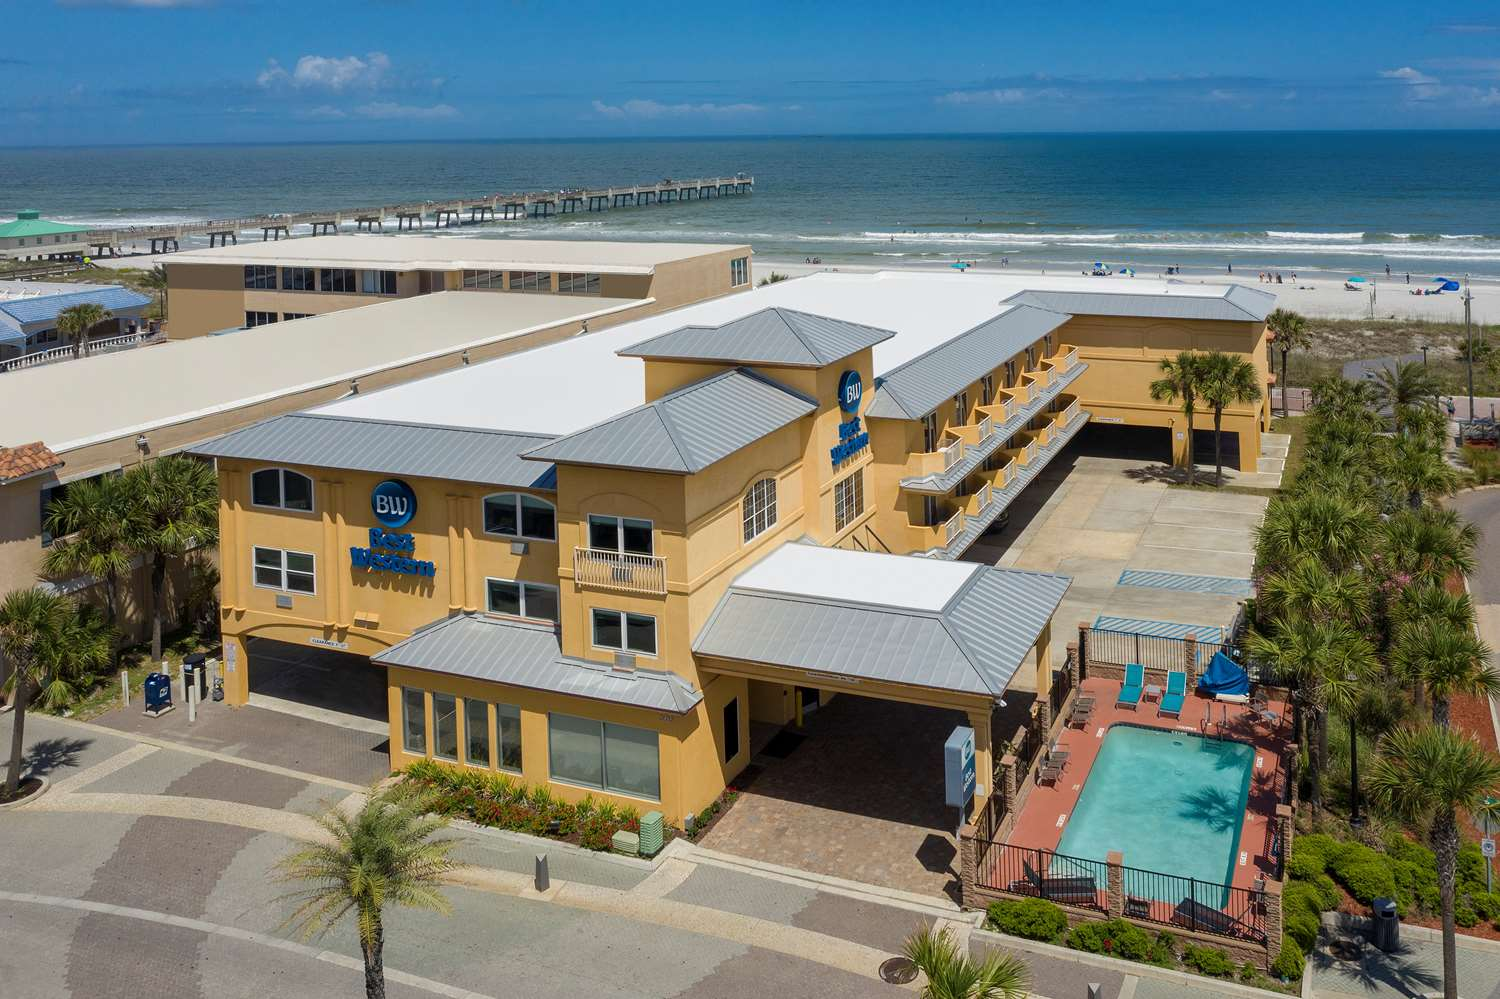 Hotels In Jacksonville Fl Near Beach Blvd